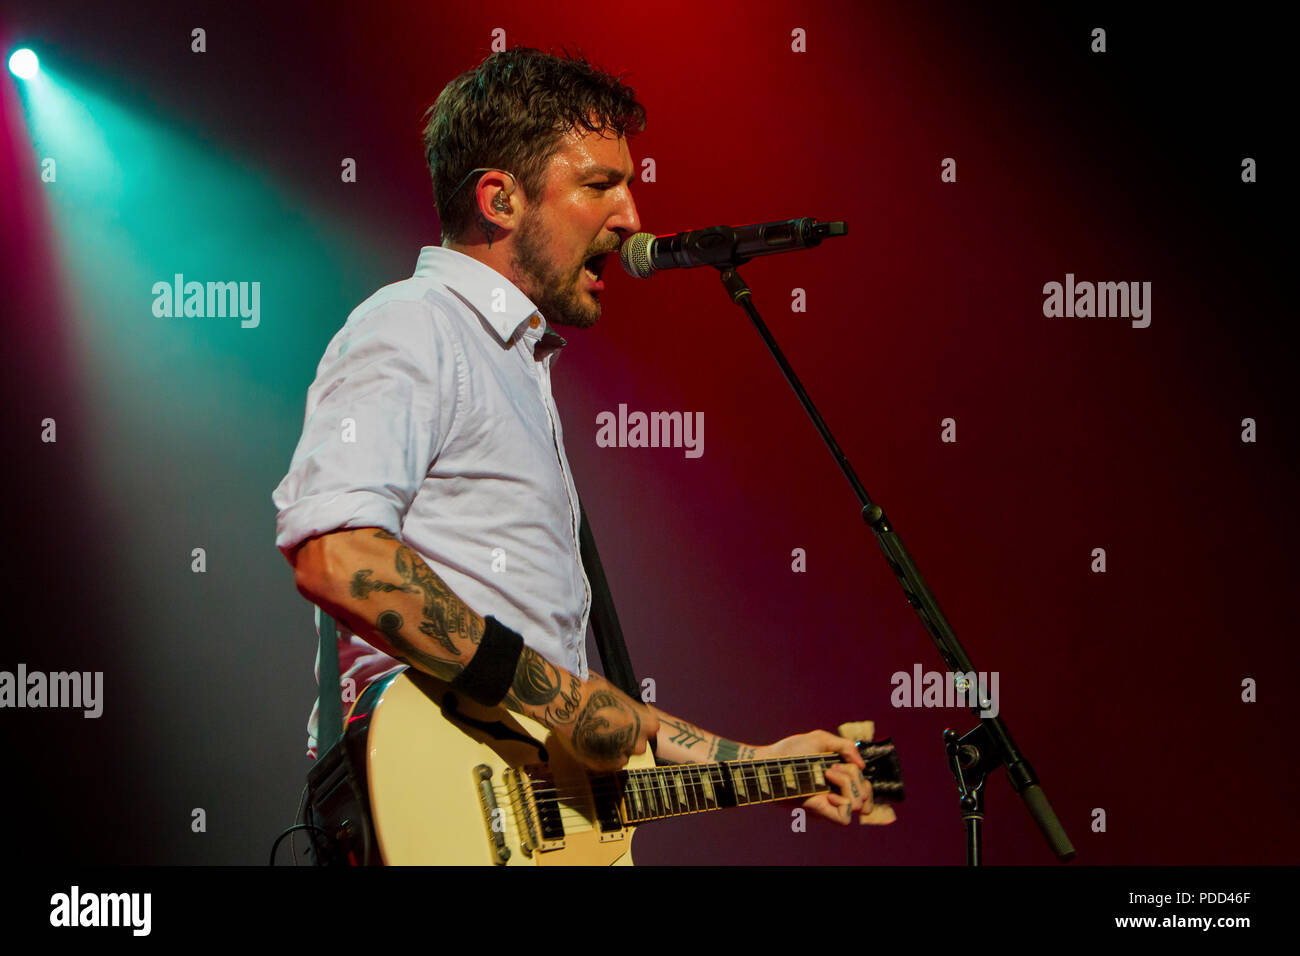 Frank Turner & The Sleeping Souls performing at The House of Blues in Dallas, Texas on June 12, 2018 during their Be More Kind Tour. - Stock Image